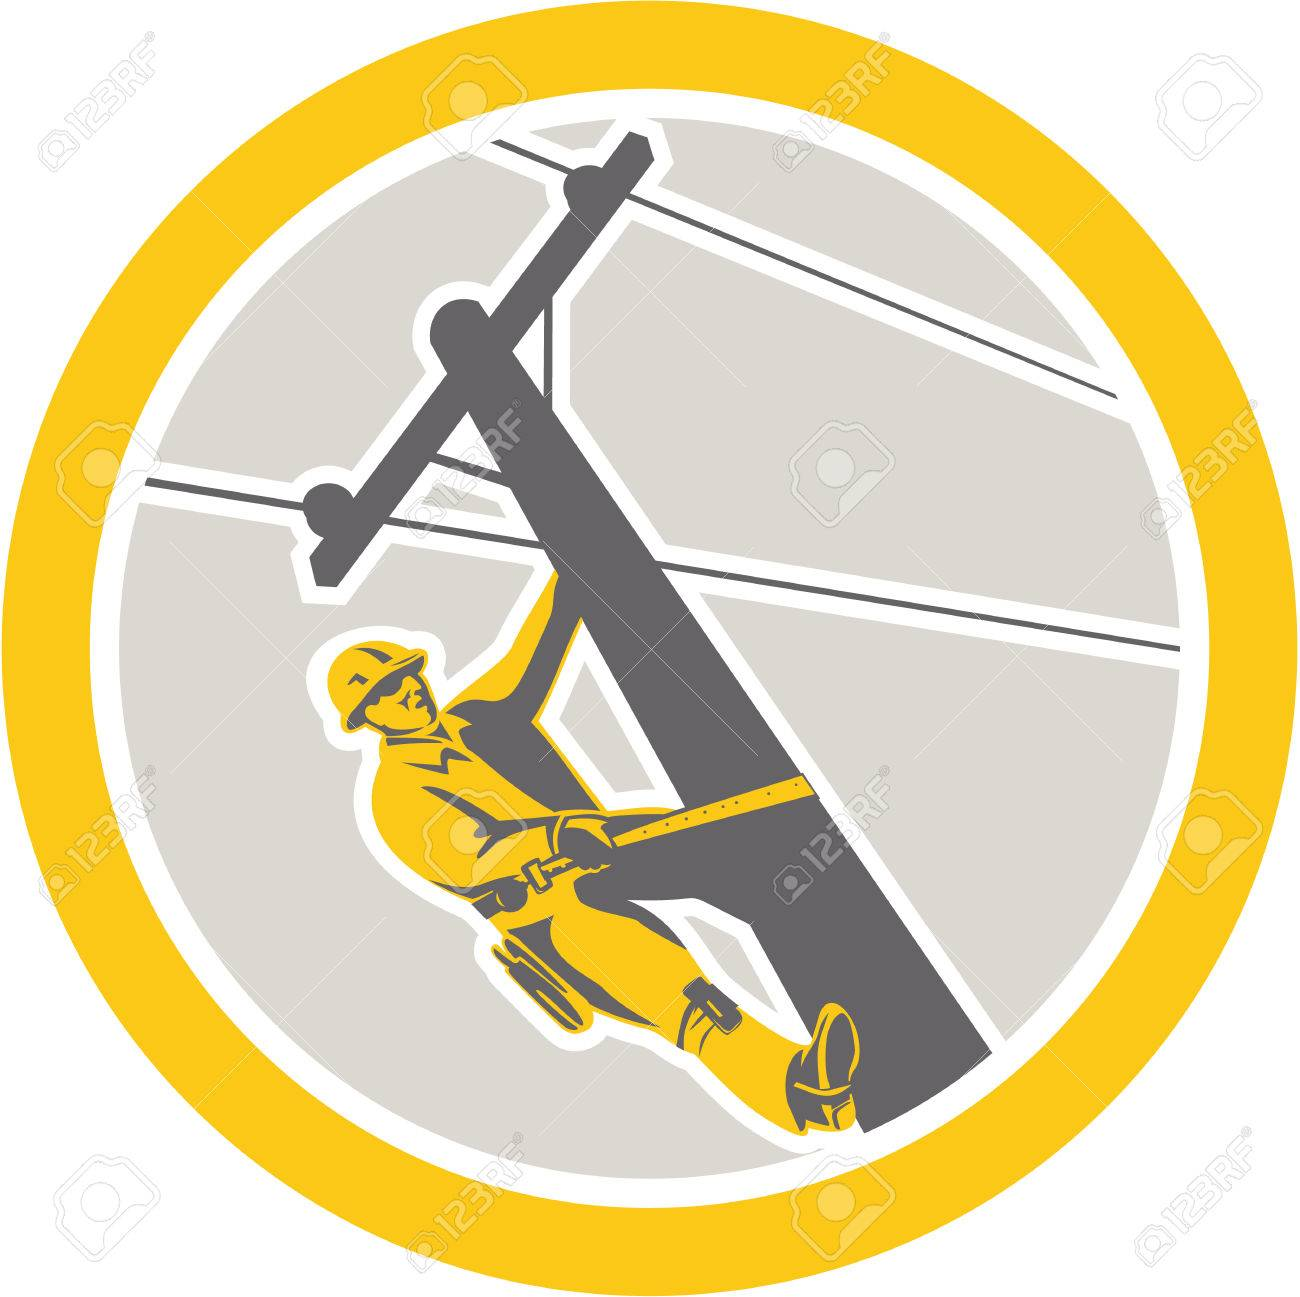 Illustration of a power lineman telephone repairman worker clmbing electric pole post repairing power cable done in retro style set inside circle. - 27874043